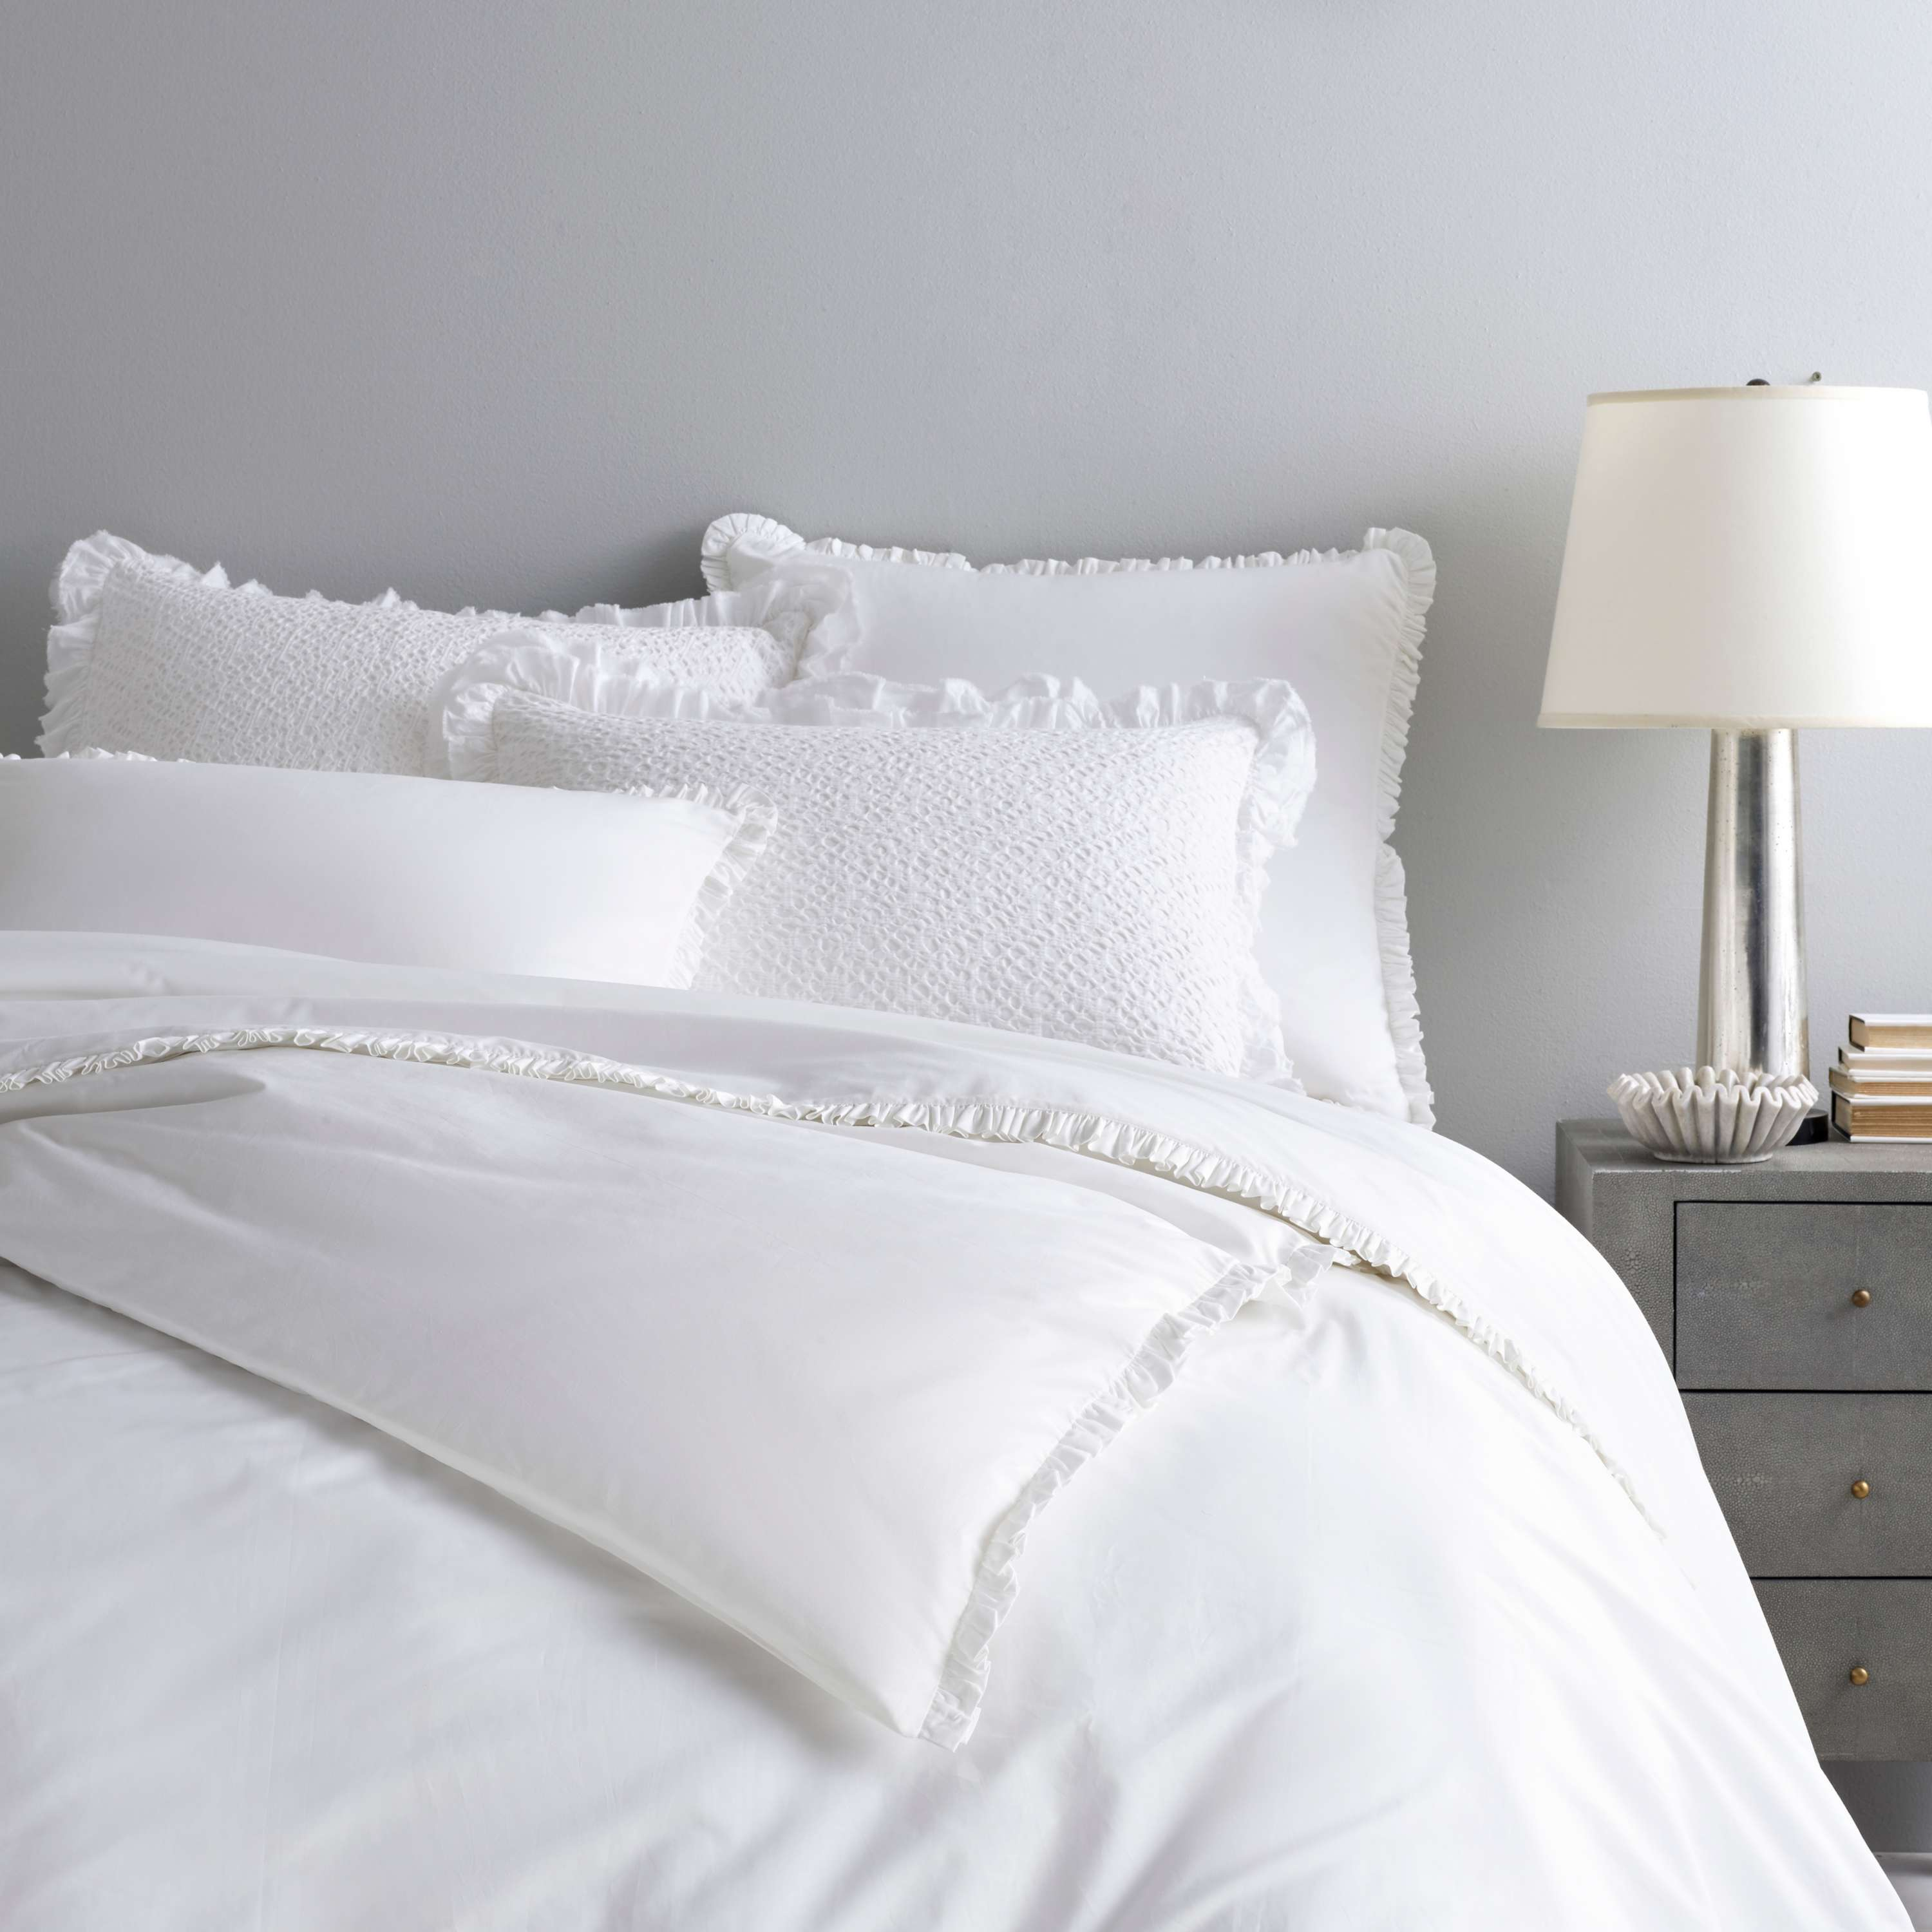 Beducation 101 10 Ways To Keep Your White Bedding White